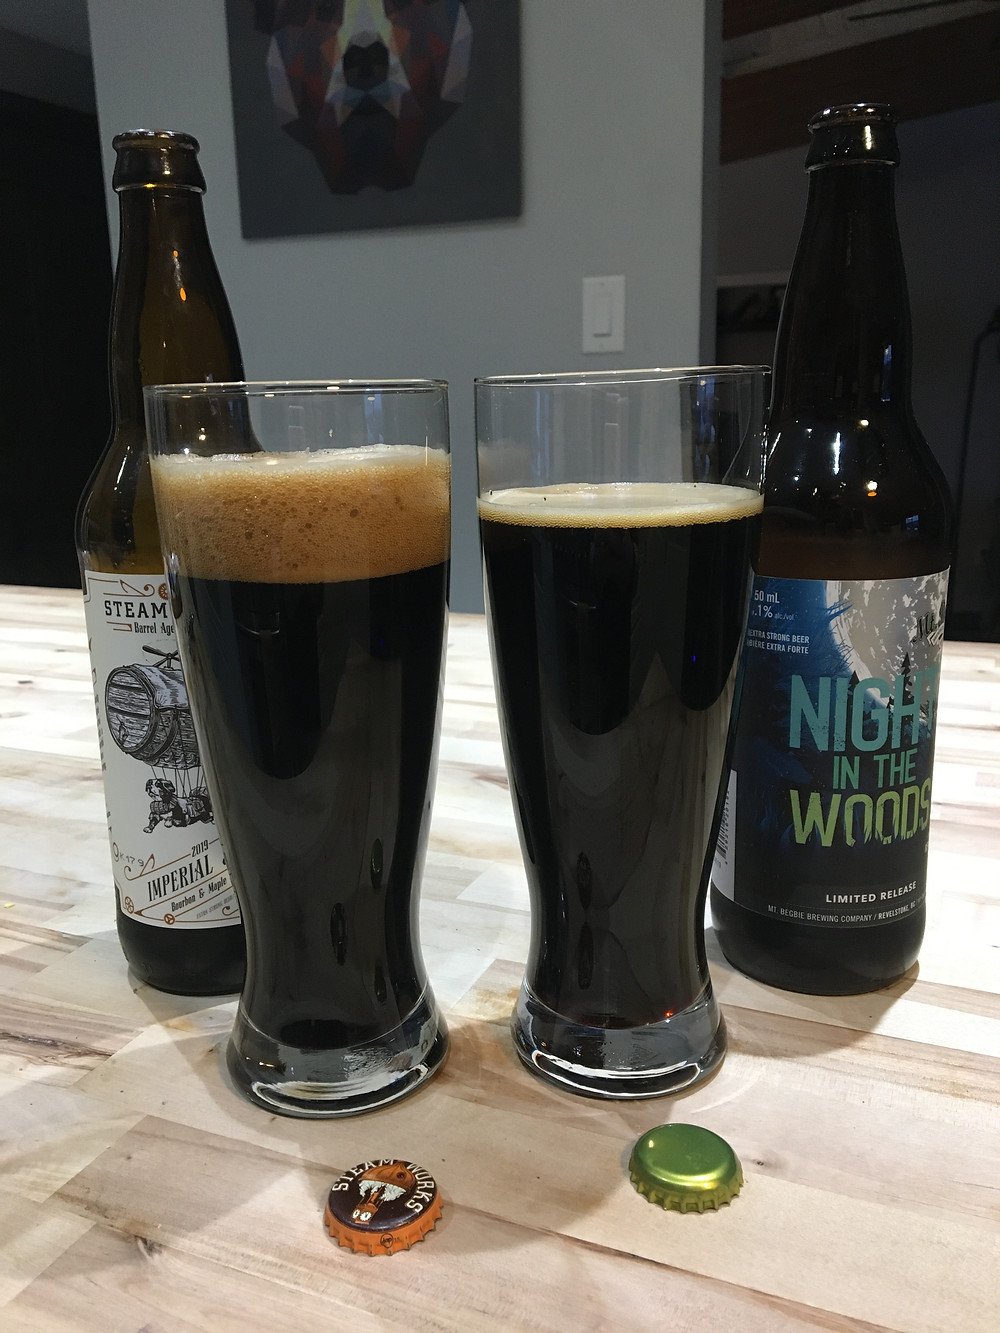 2 imperial stout beers to be tasted by beer truck owner jody